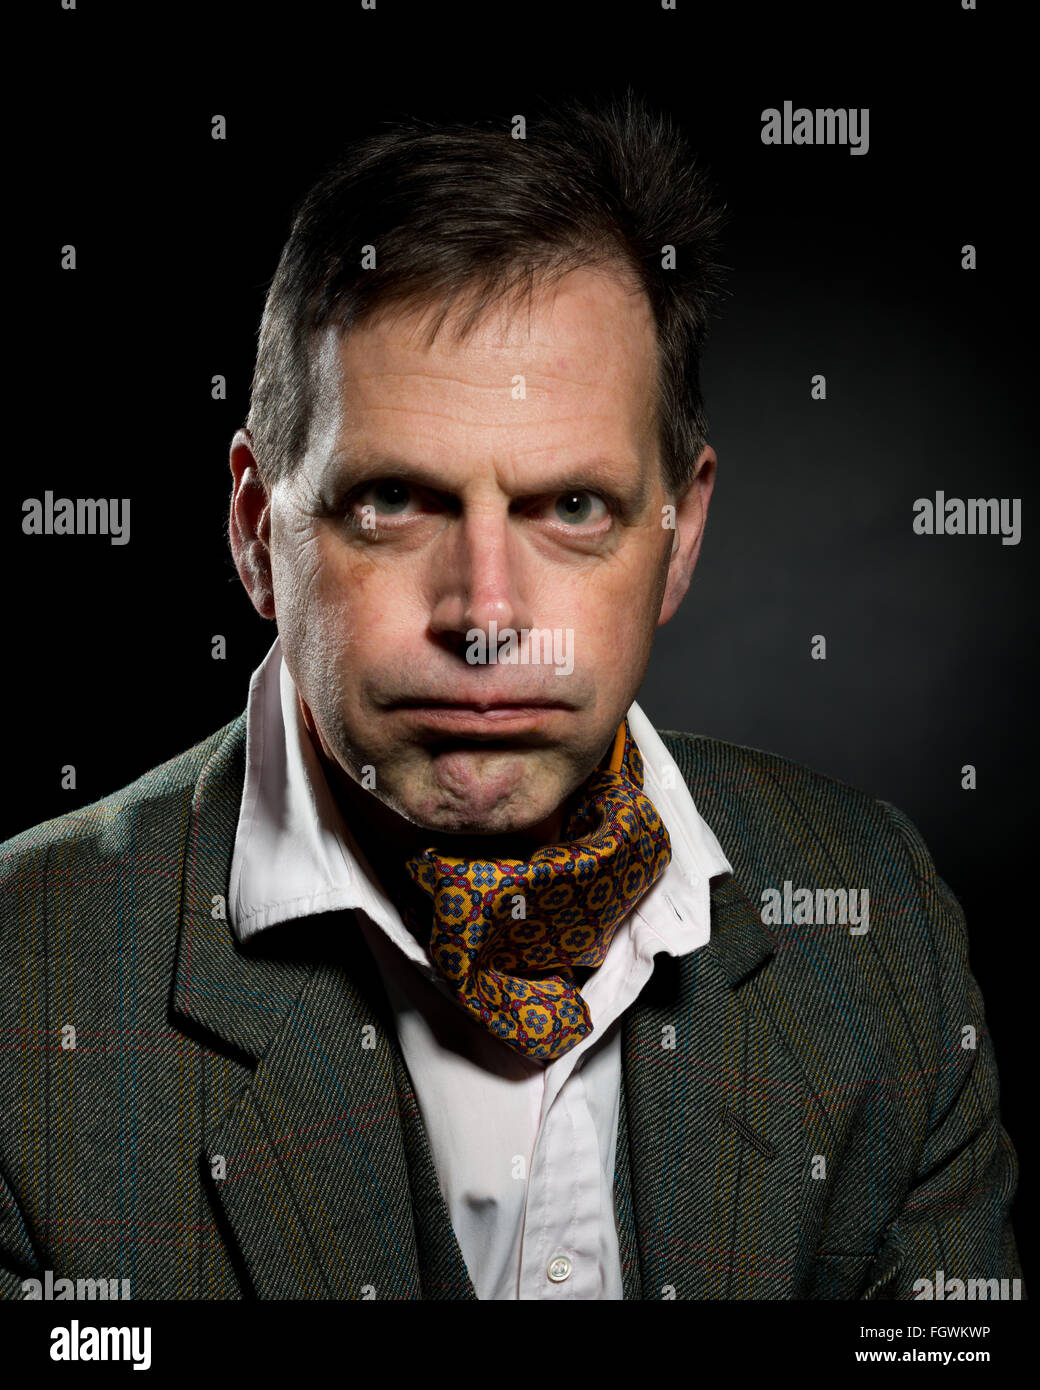 Middle aged slightly grumpy man. Dressed in tweed suit with cravat. Slightly annoyed or unamused. - Stock Image